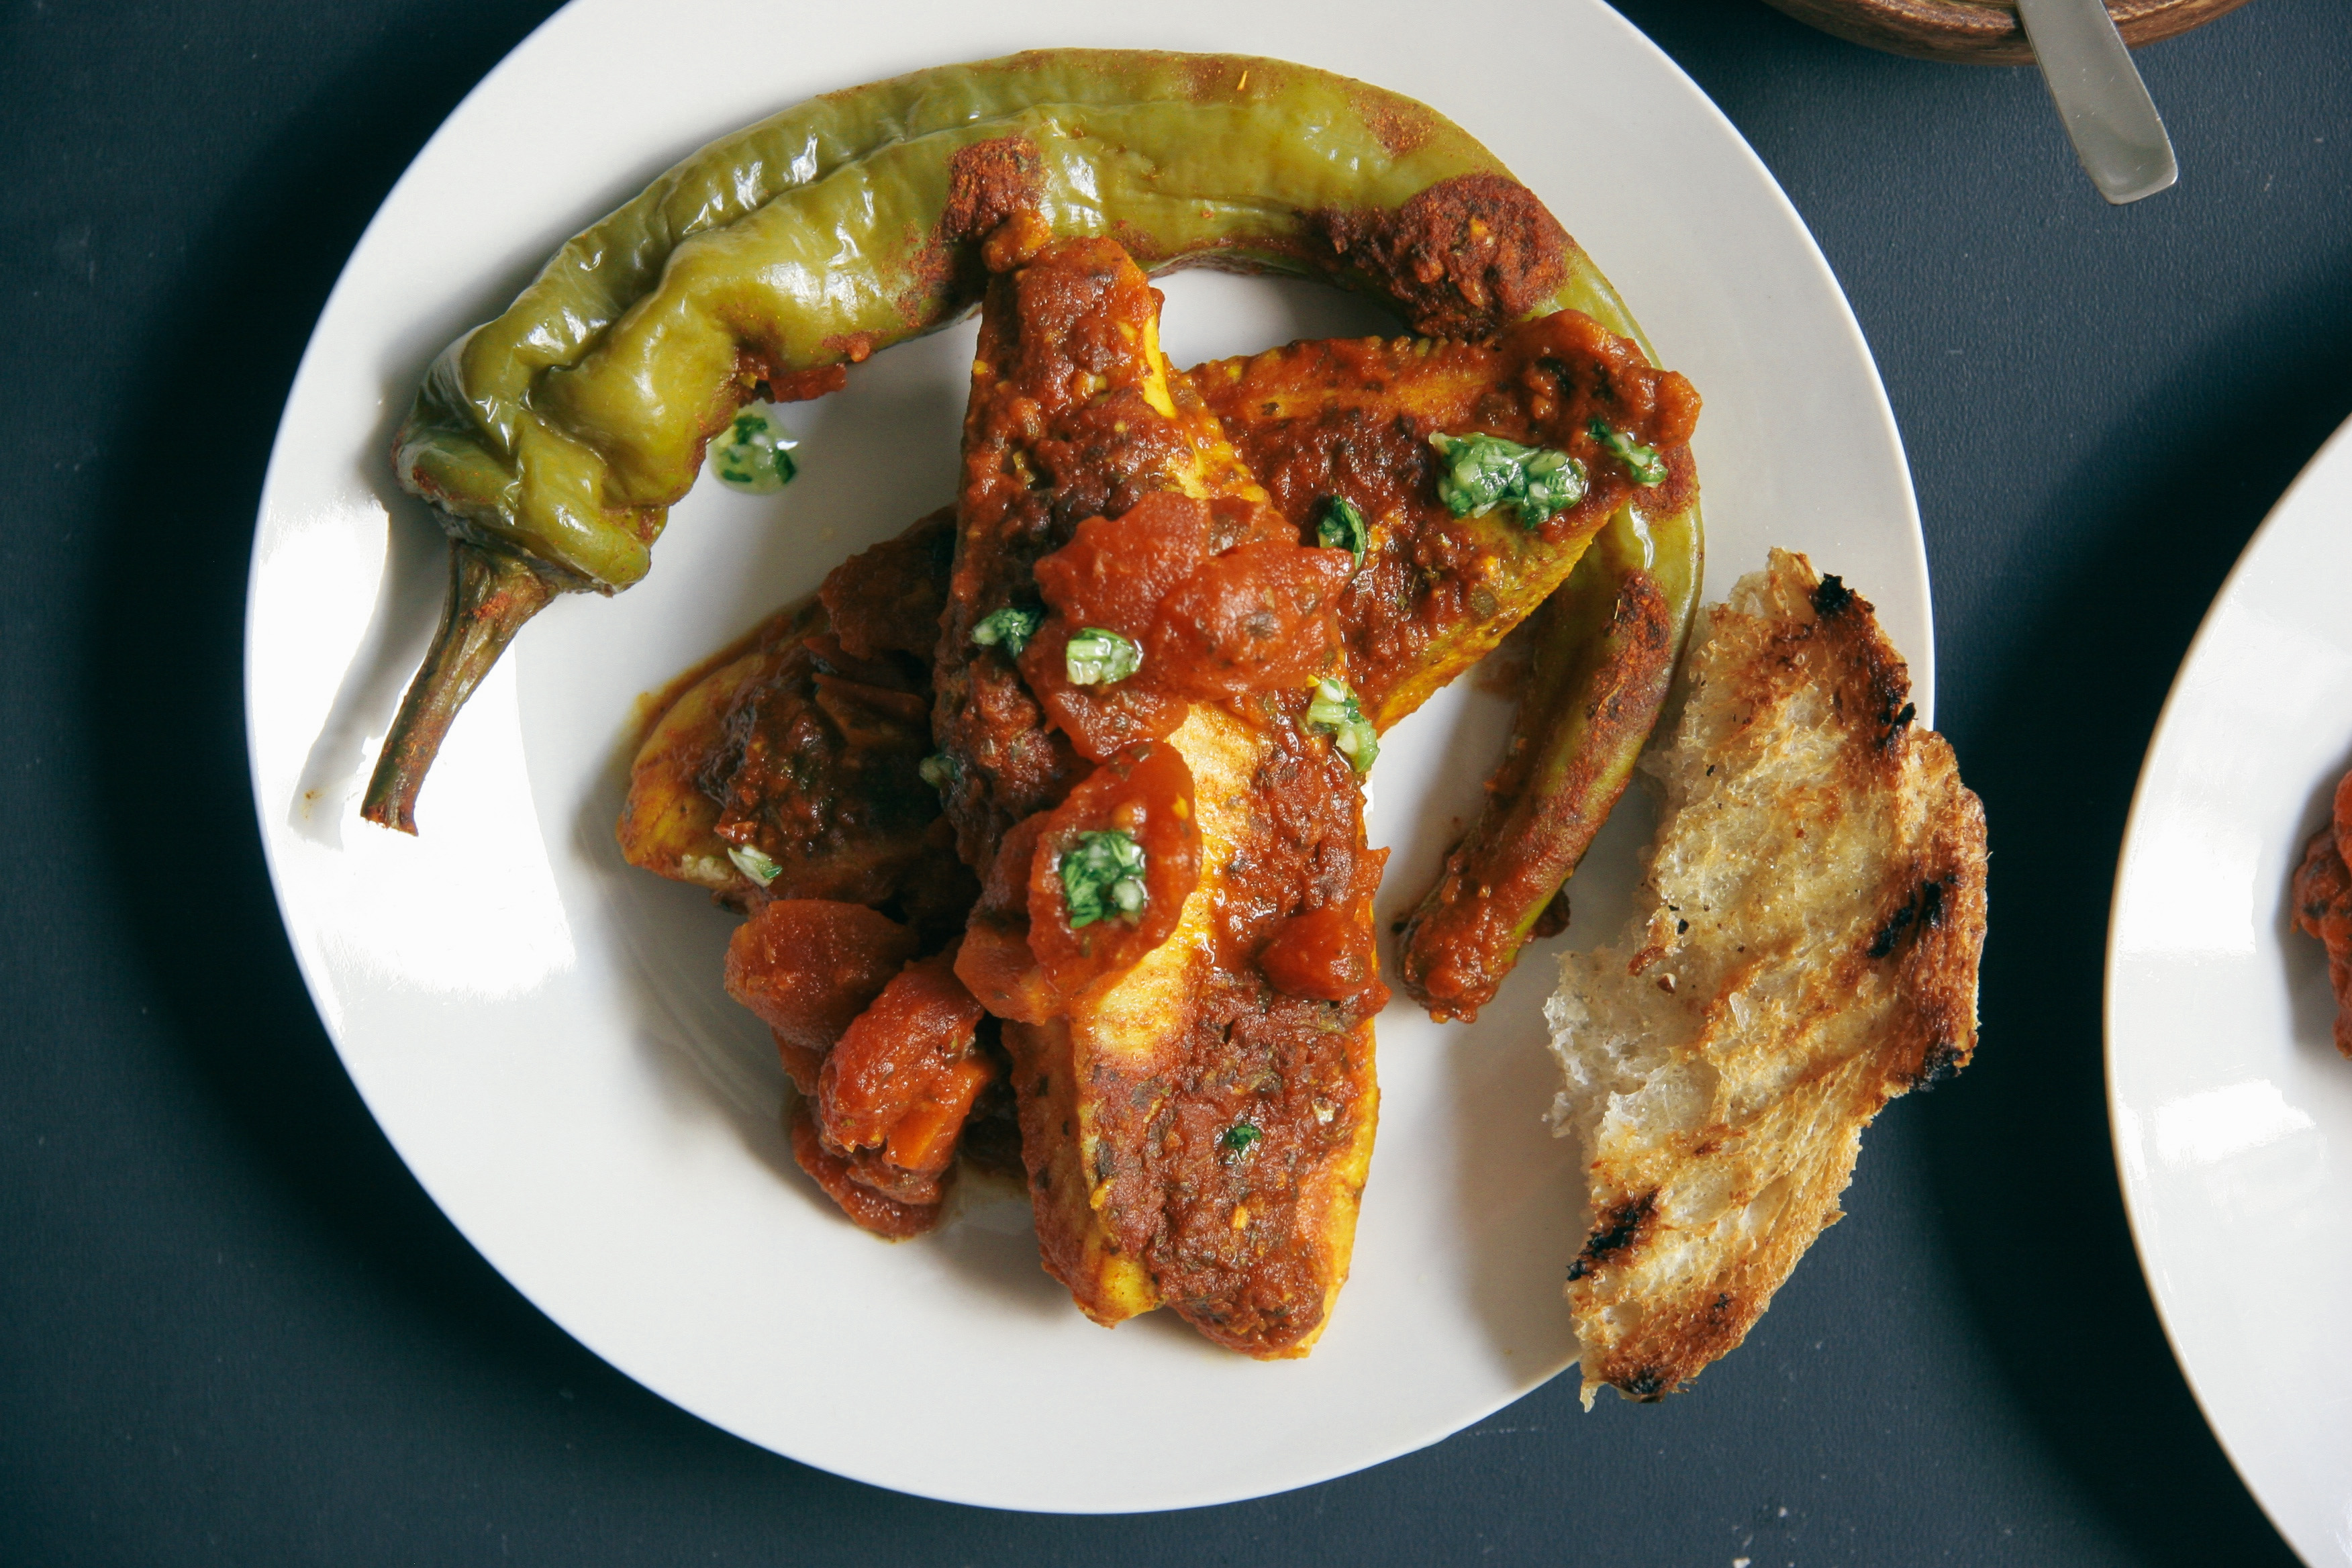 Spicy Moroccan Fish in Tomato Sauce | I Will Not Eat Oysters